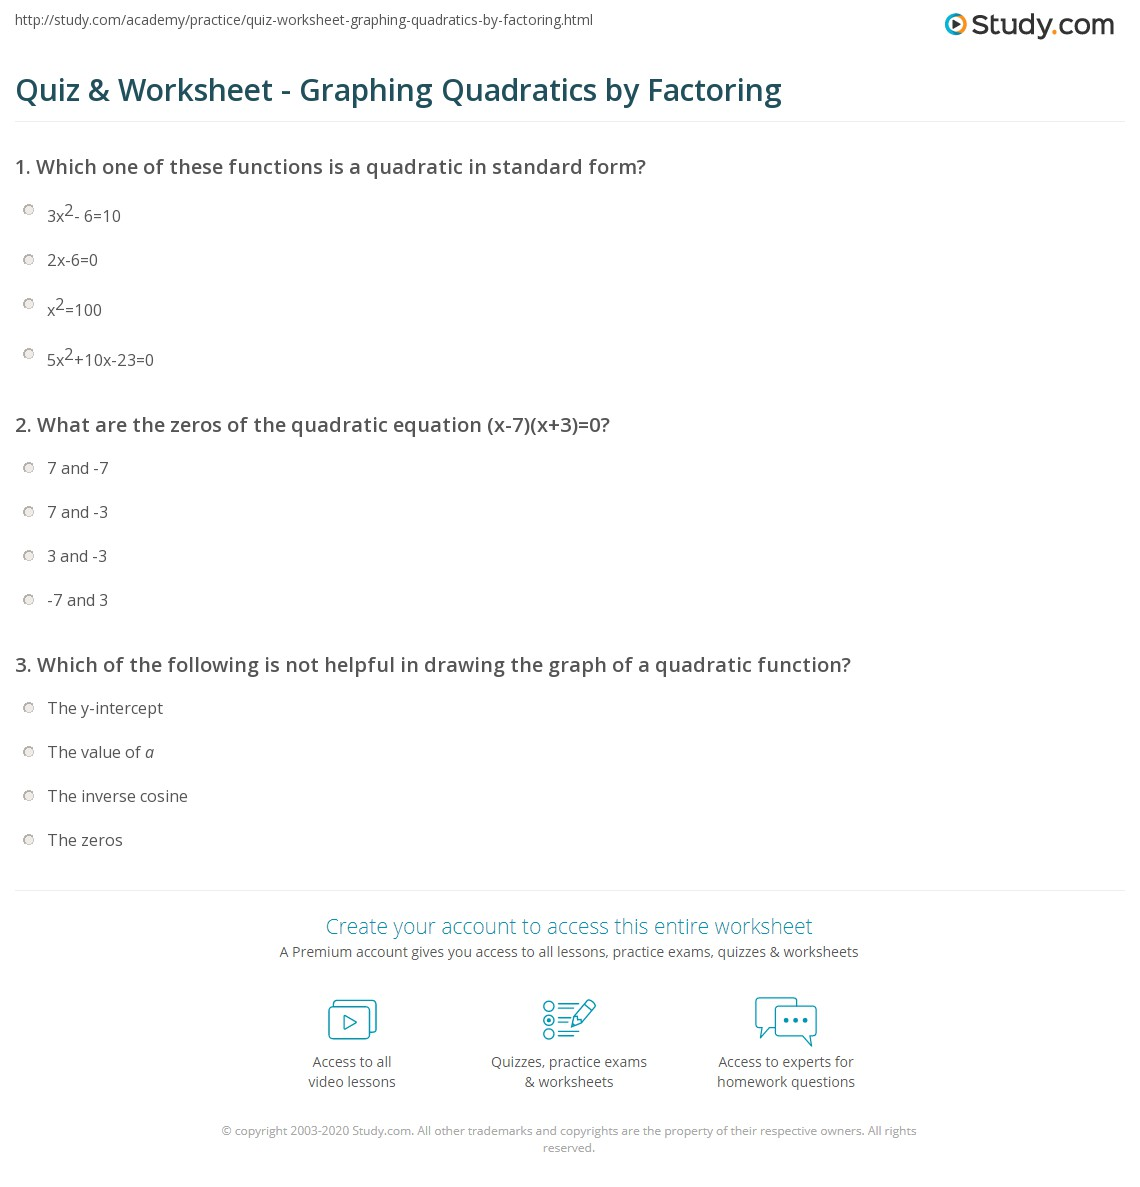 Quiz Worksheet Graphing Quadratics By Factoring Study